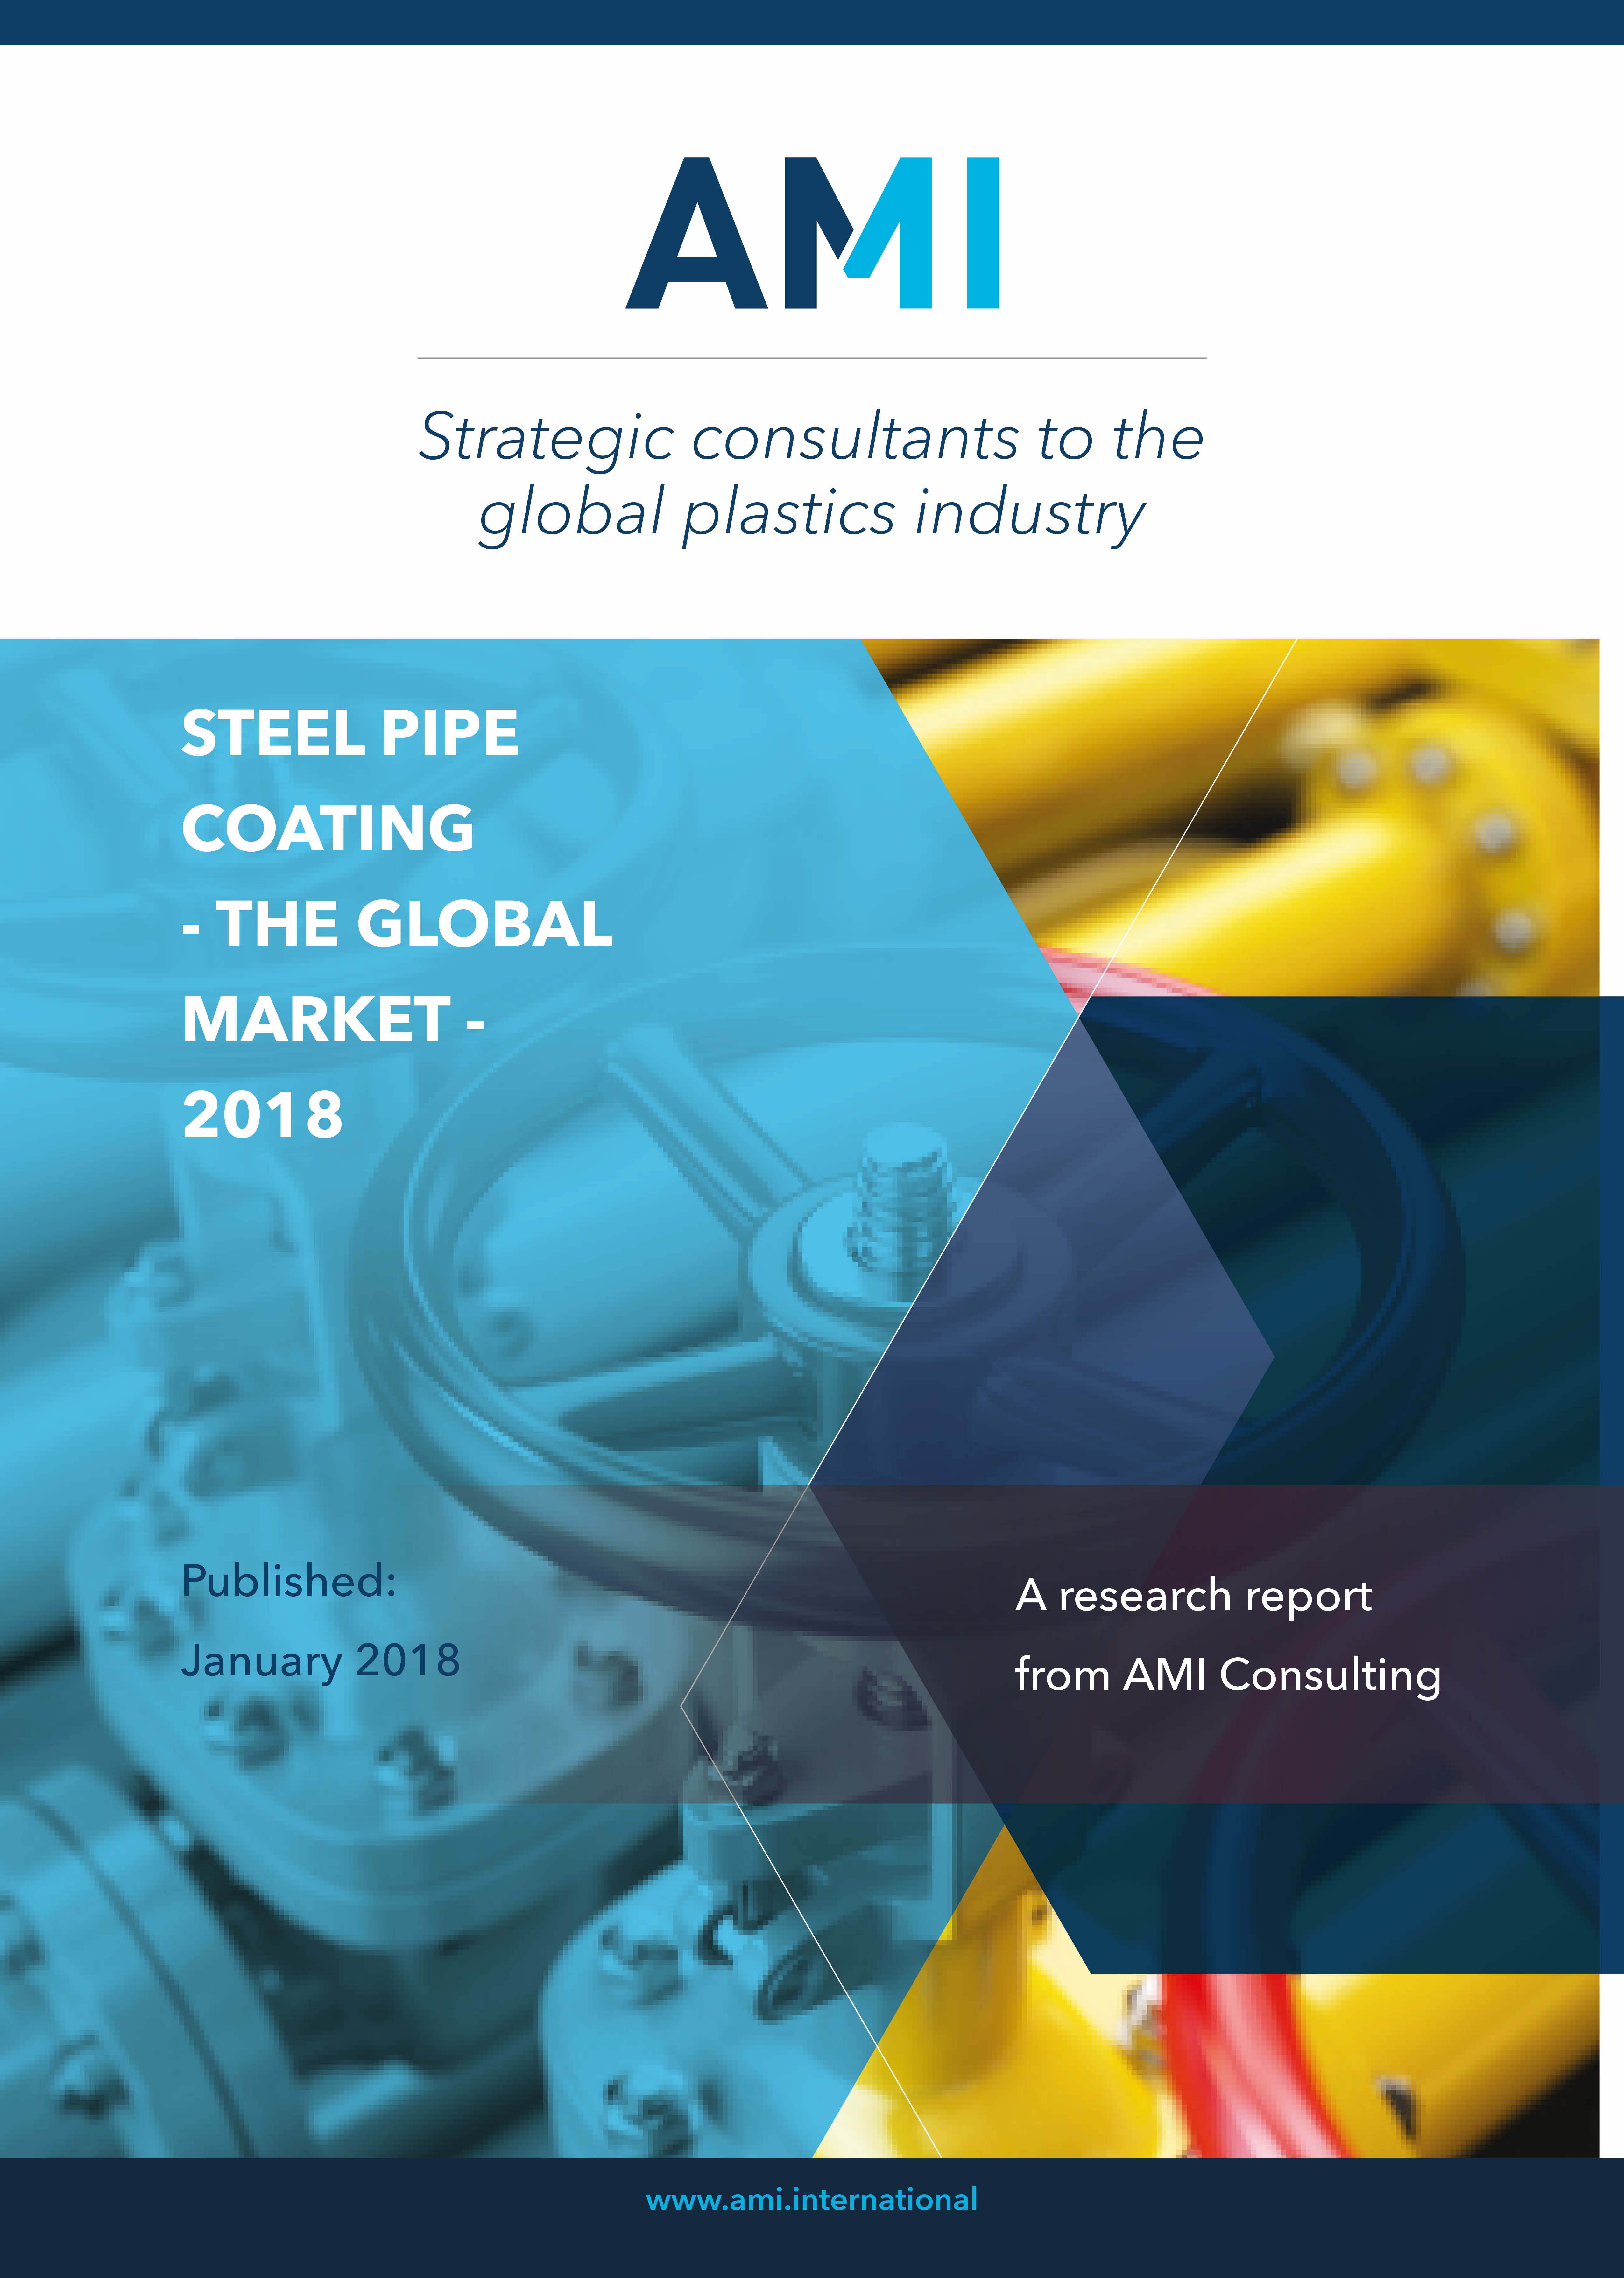 Steel pipe coating - the global market 2018